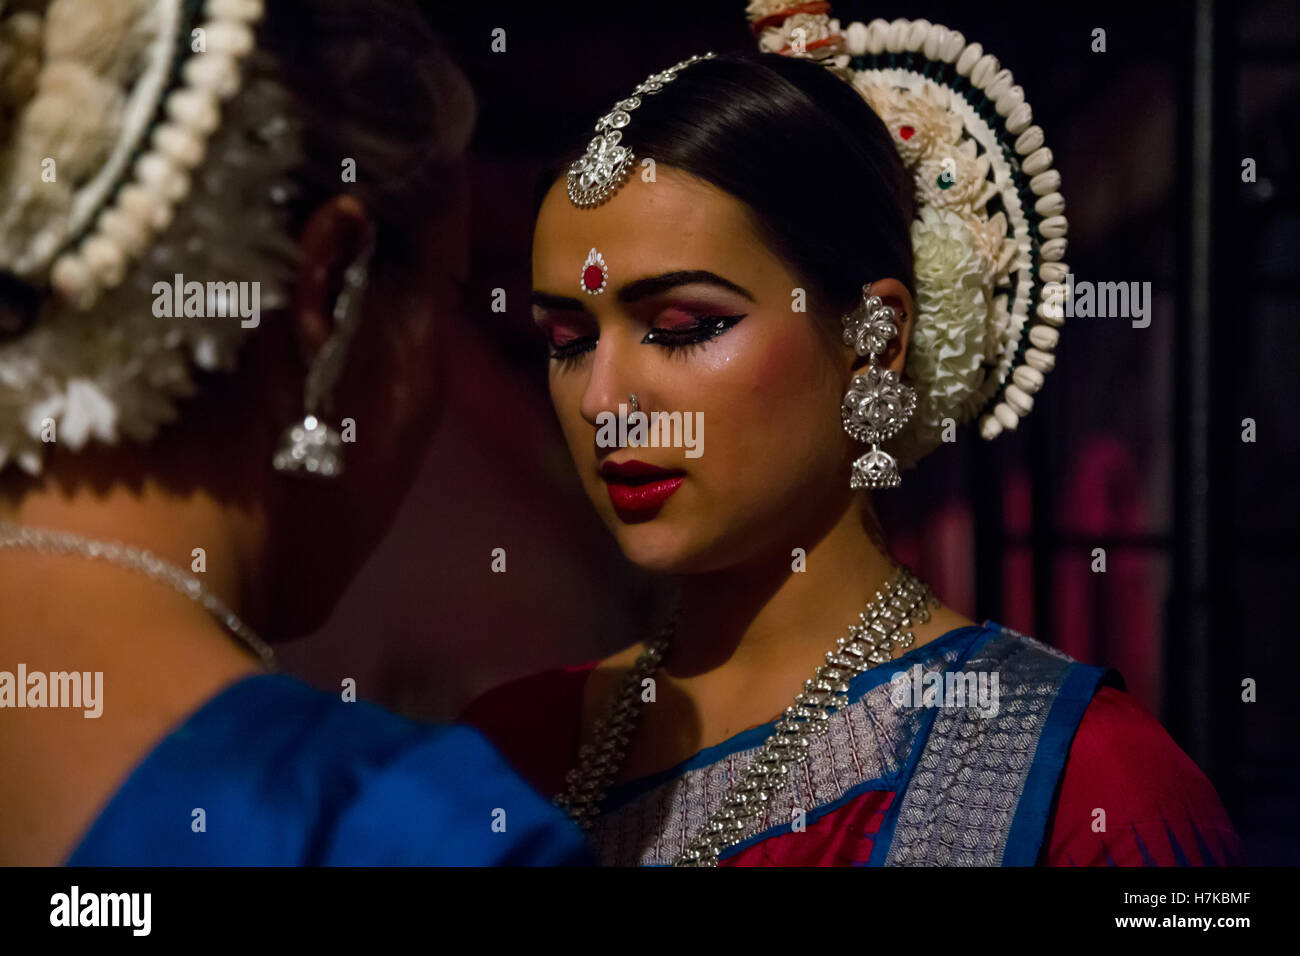 European woman in Indian dress before going on stage during the celebration of Diwali (the Hindu festival of lights) - Stock Image